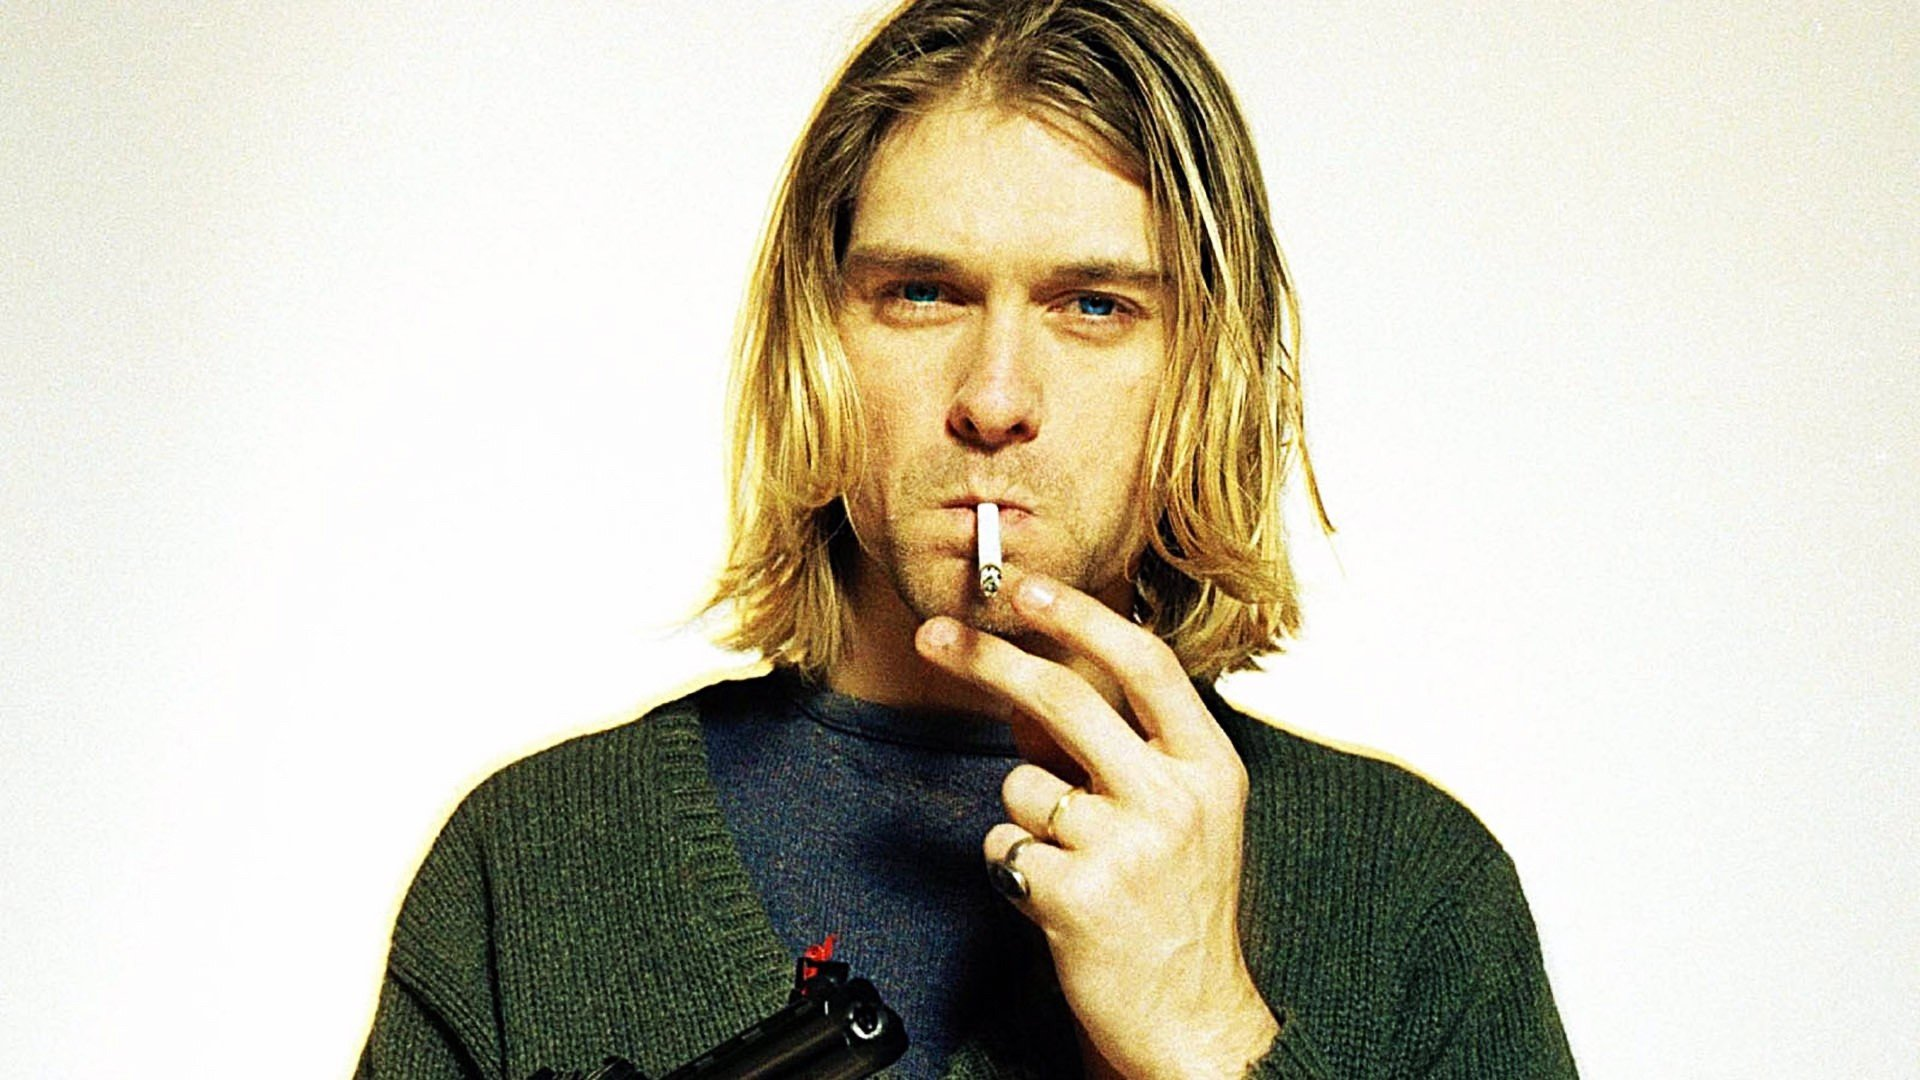 Kurt Cobain Wallpapers 1920x1080 Full Hd 1080p Desktop